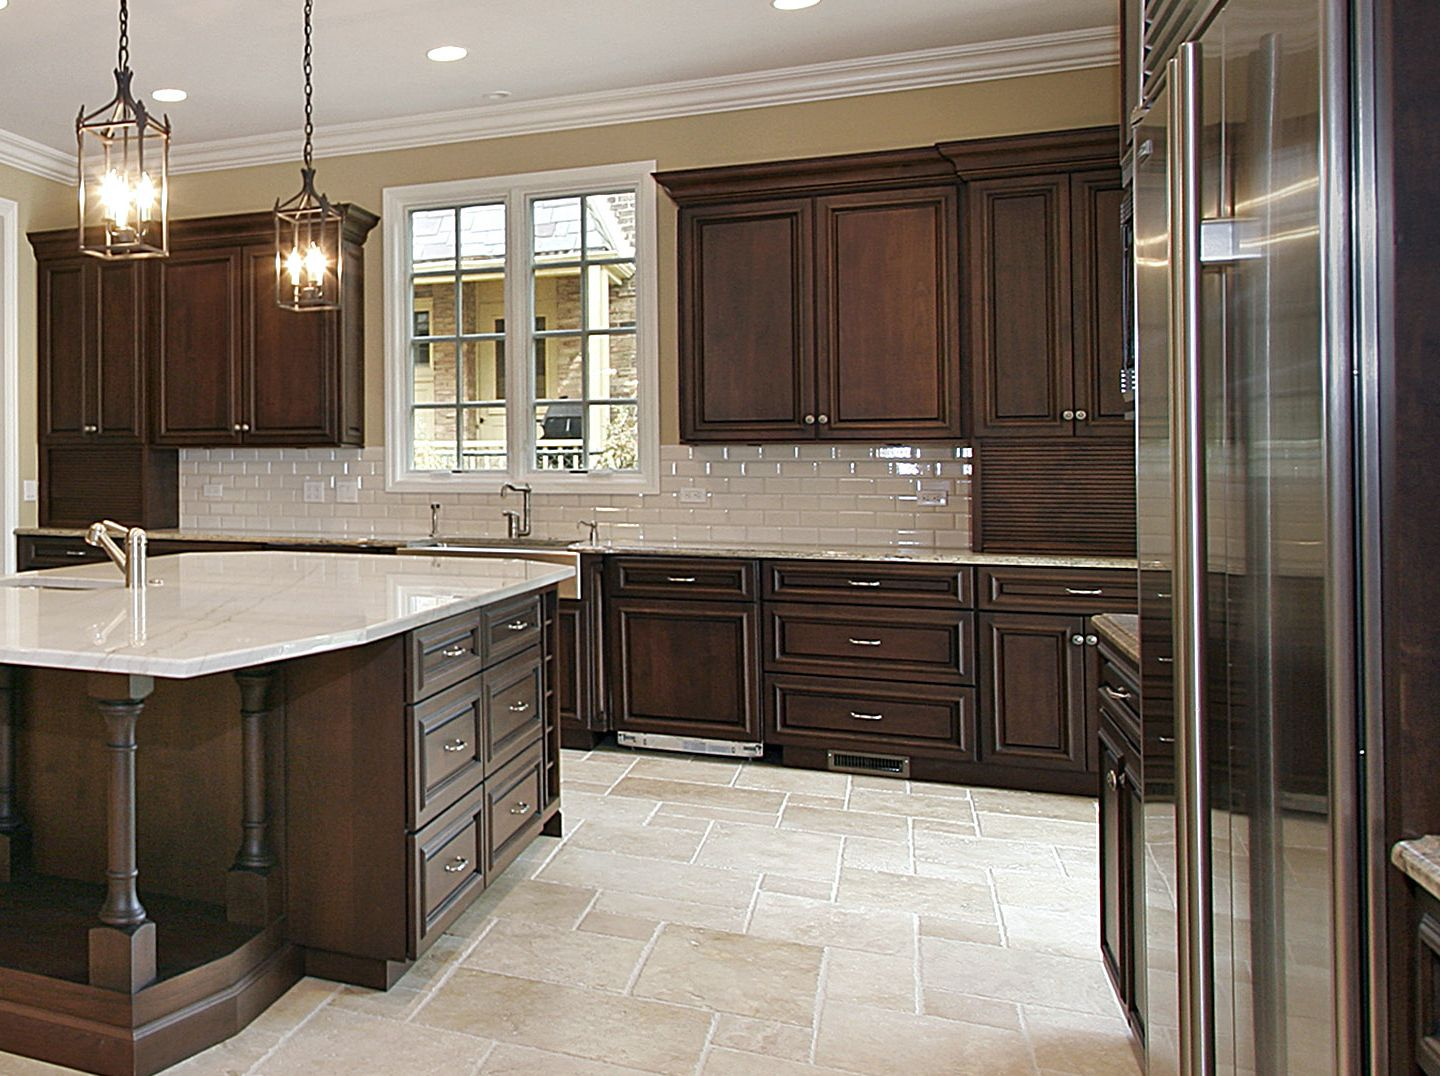 Kitchen Floor Cabinets Oak Cabinet Cherry With Gray Wall And Quartz